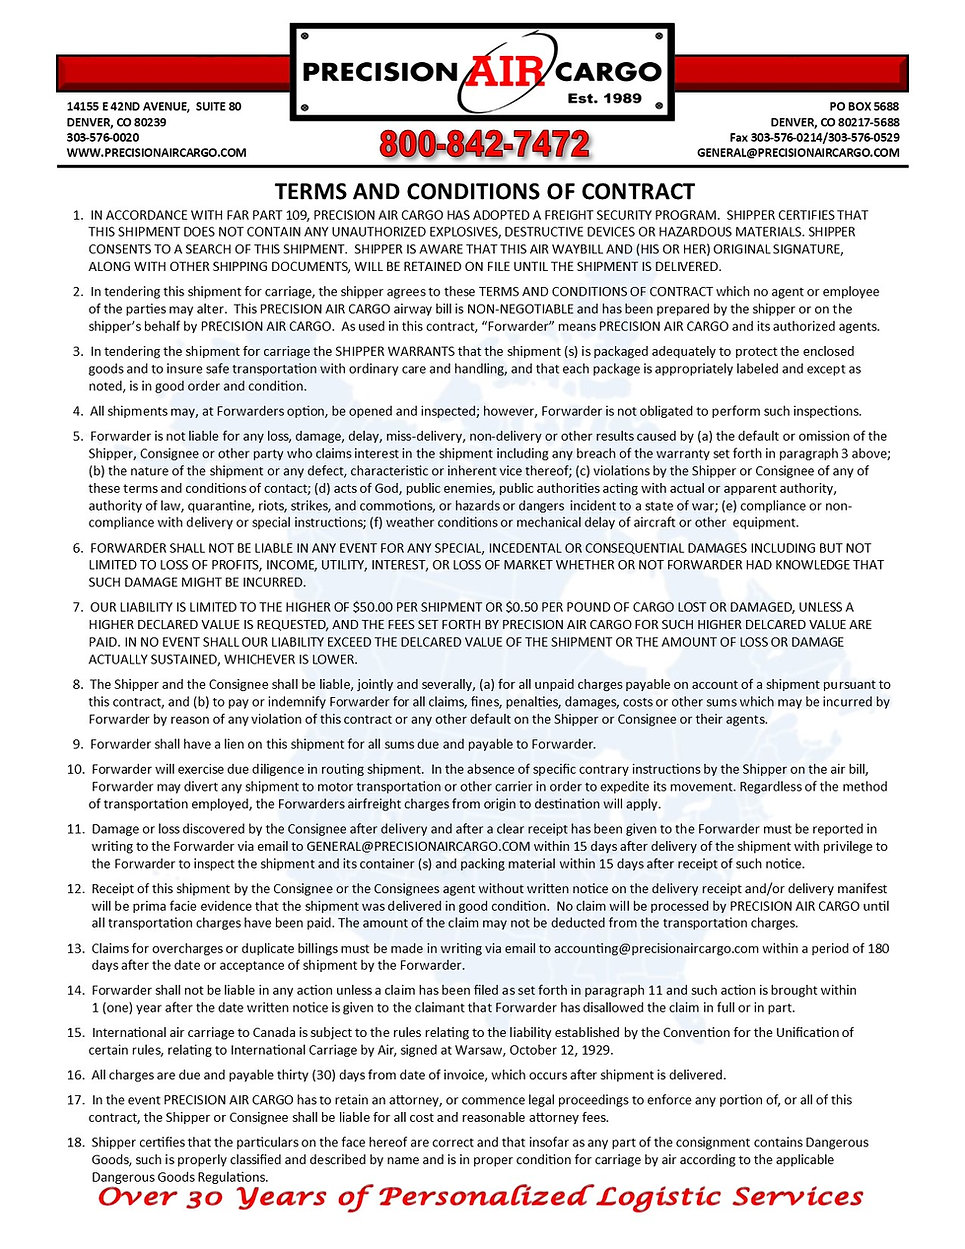 PAC TERMS AND CONDITIONS 2019.jpg